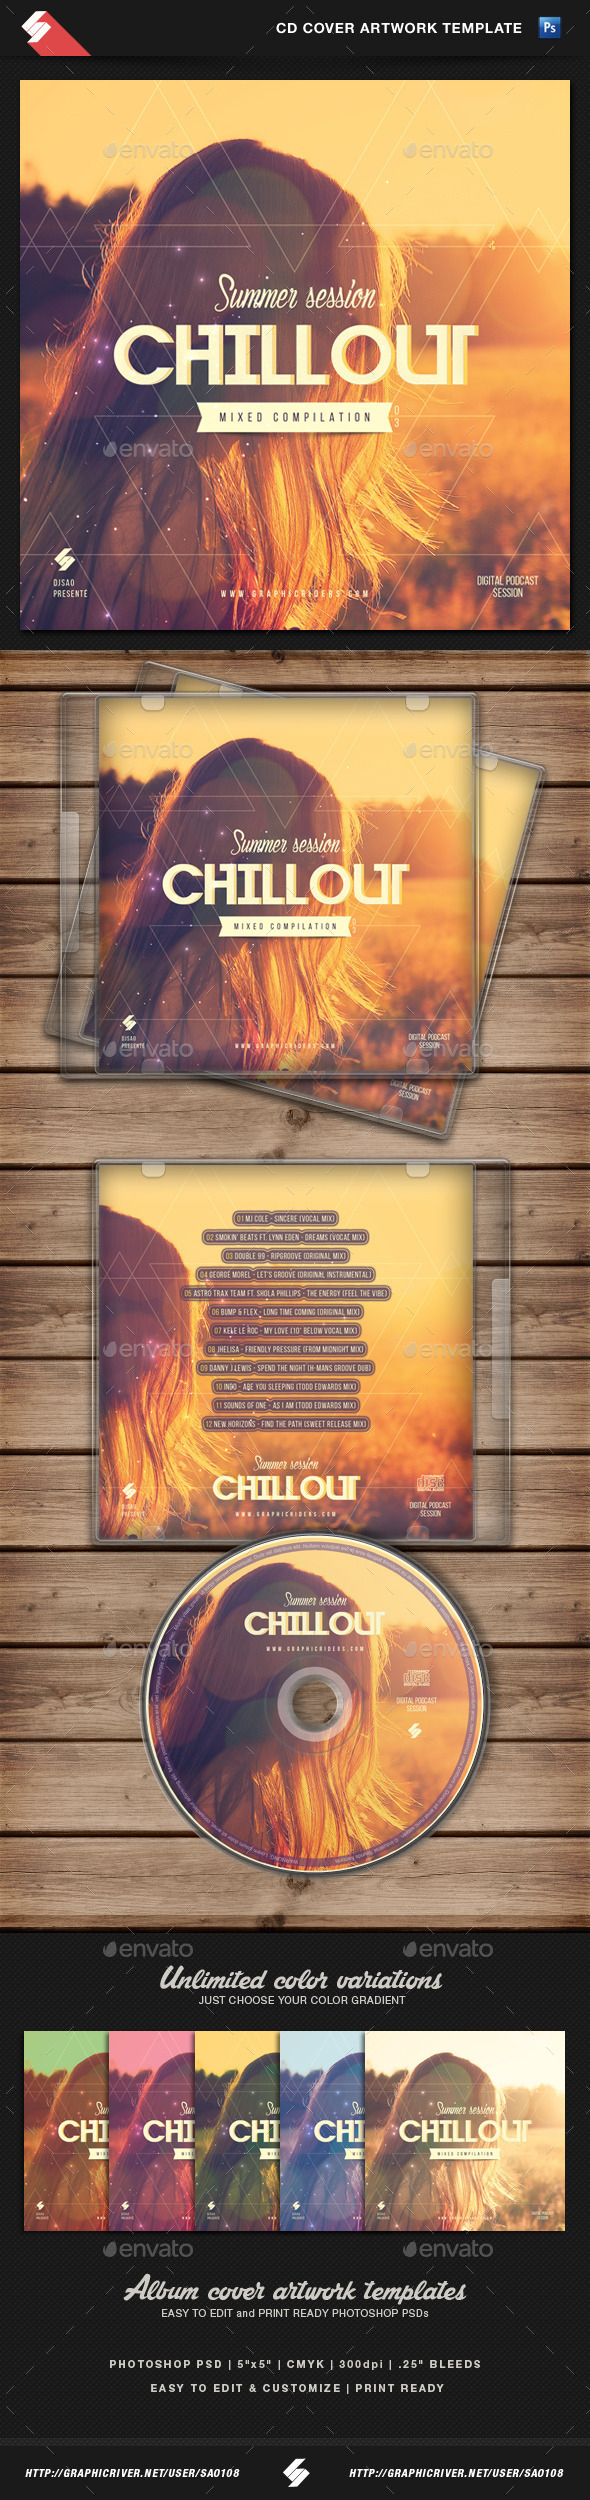 GraphicRiver Summer Chillout CD Cover Artwork Template 10983633